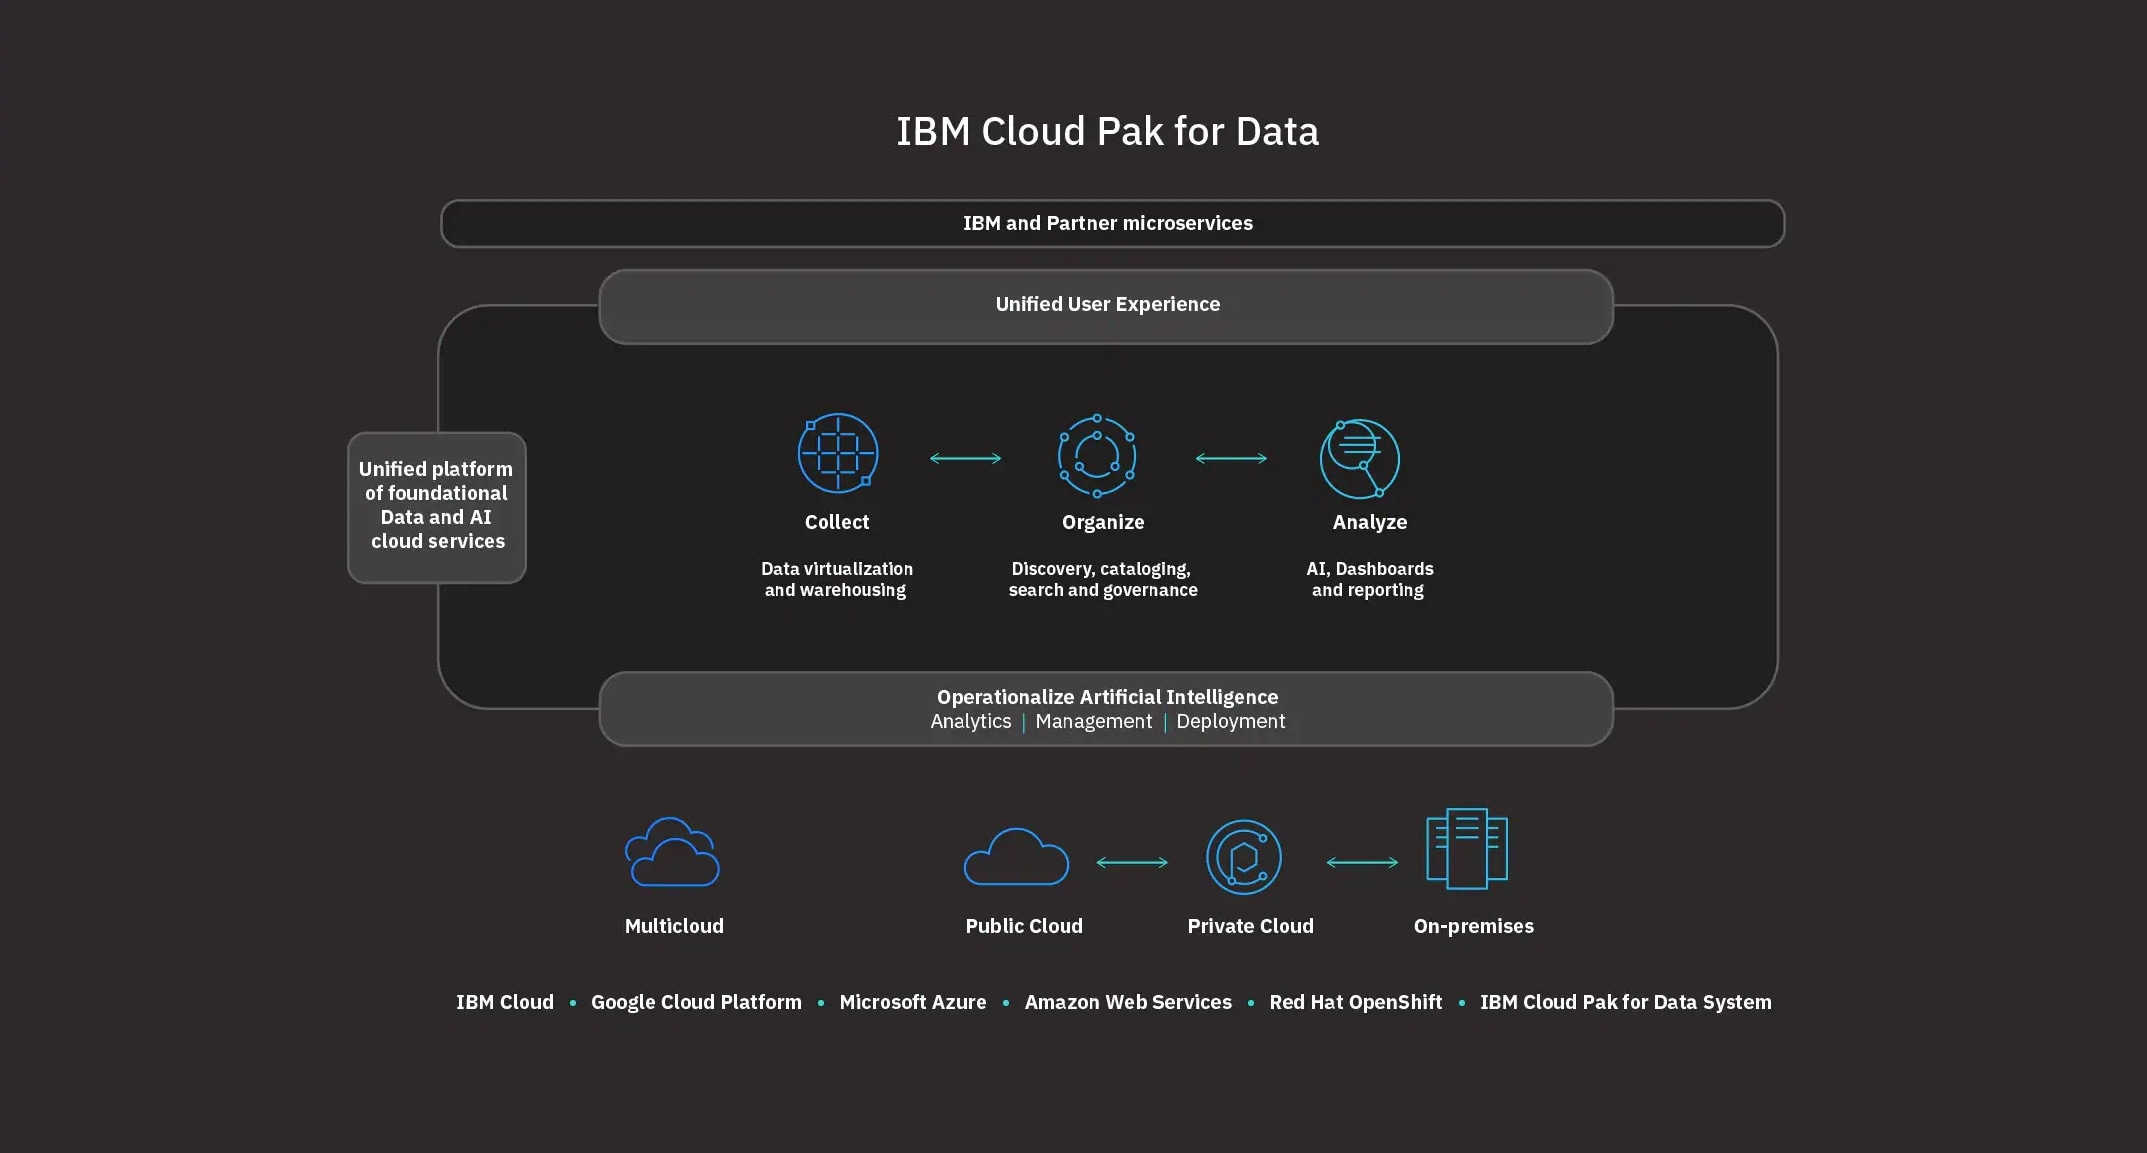 جولة المنتج IBM Cloud Pak for Data 3.0